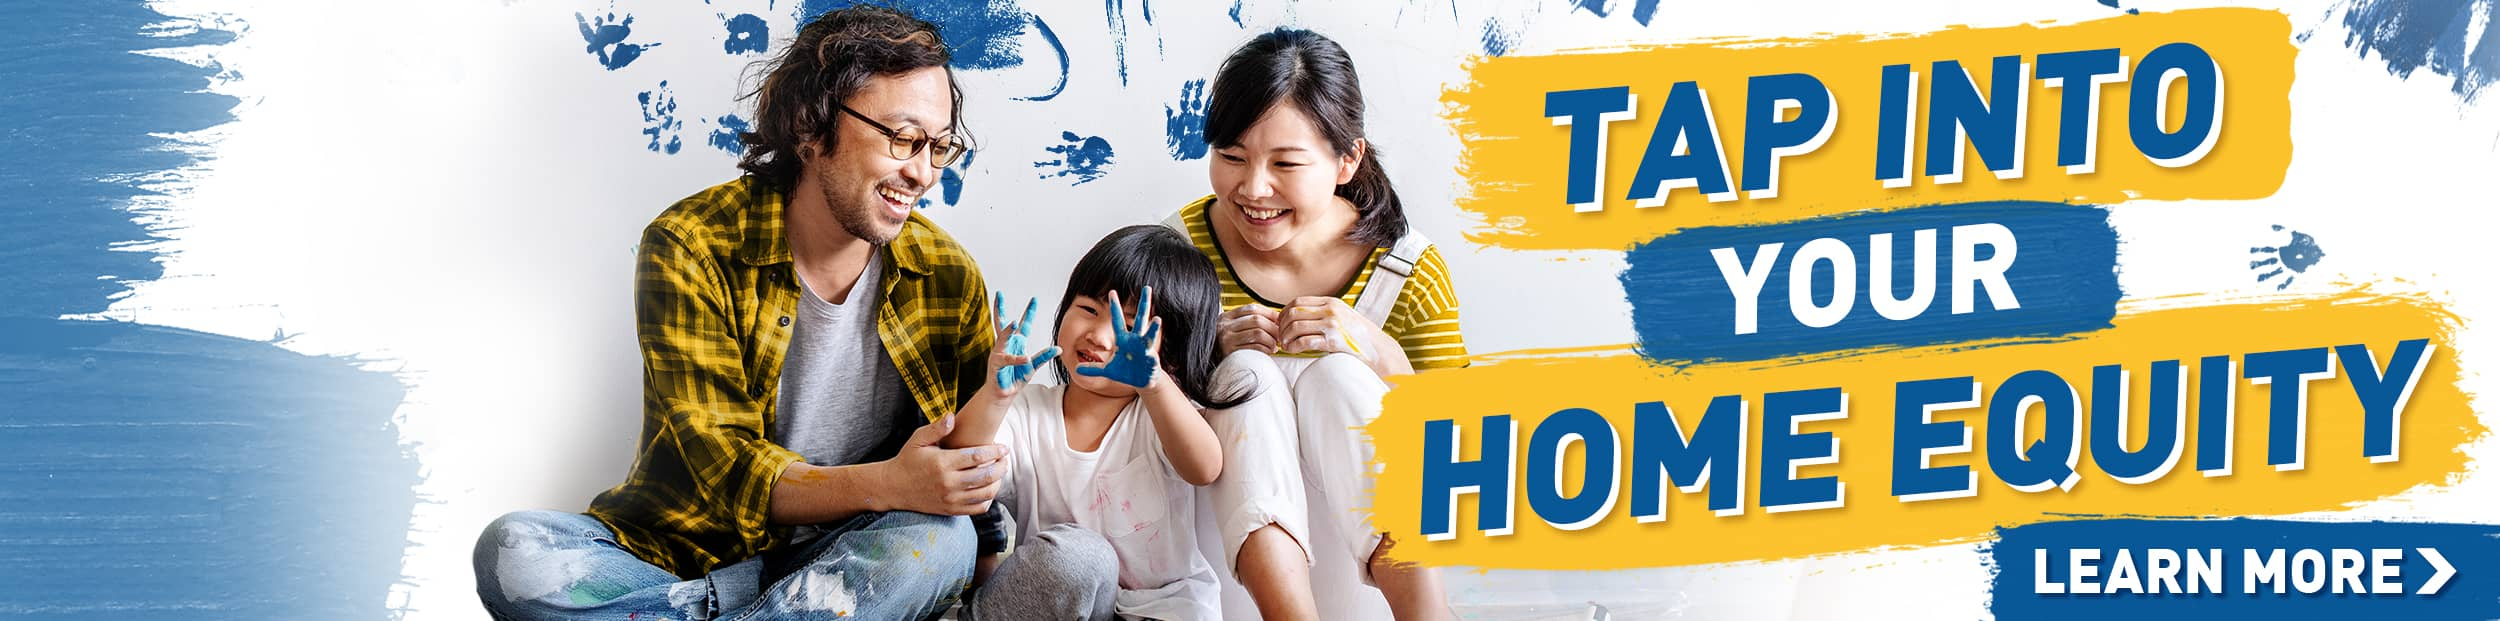 Tap into your home equity promo home page banner featuring Asian American parents and their daughter who has blue paint on her hands from painting a wall.